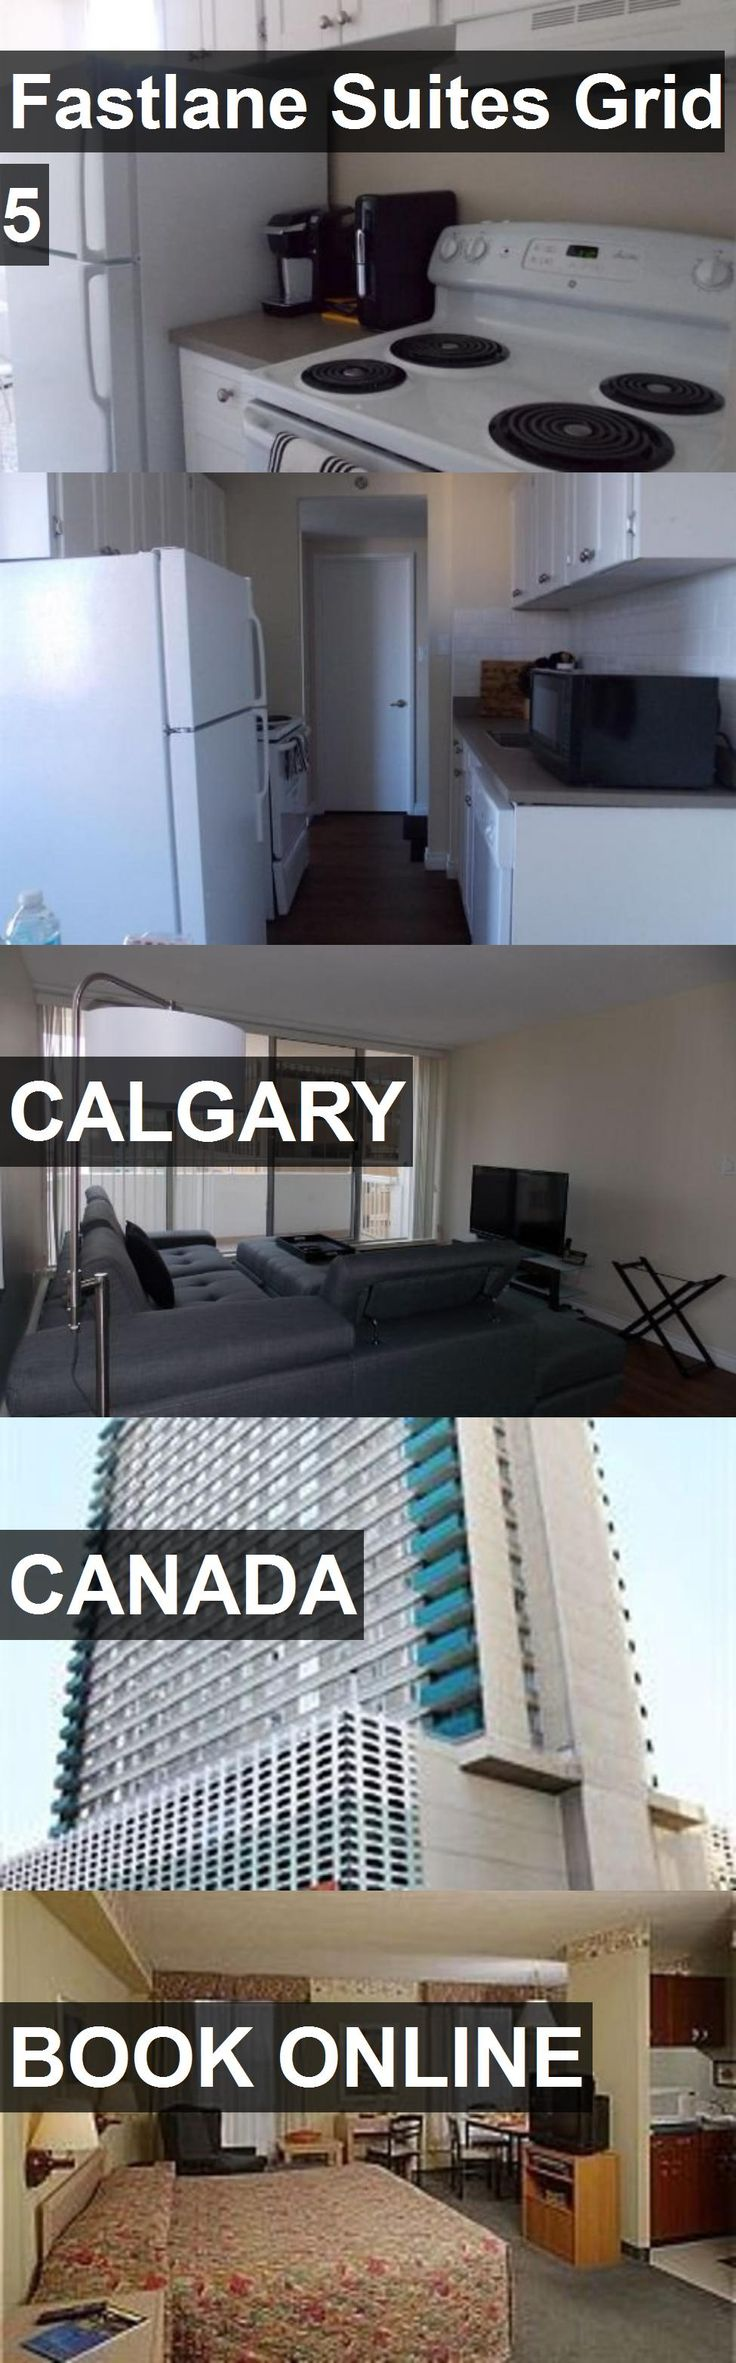 Hotel Fastlane Suites Grid 5 in Calgary, Canada. For more information, photos, reviews and best prices please follow the link. #Canada #Calgary #travel #vacation #hotel